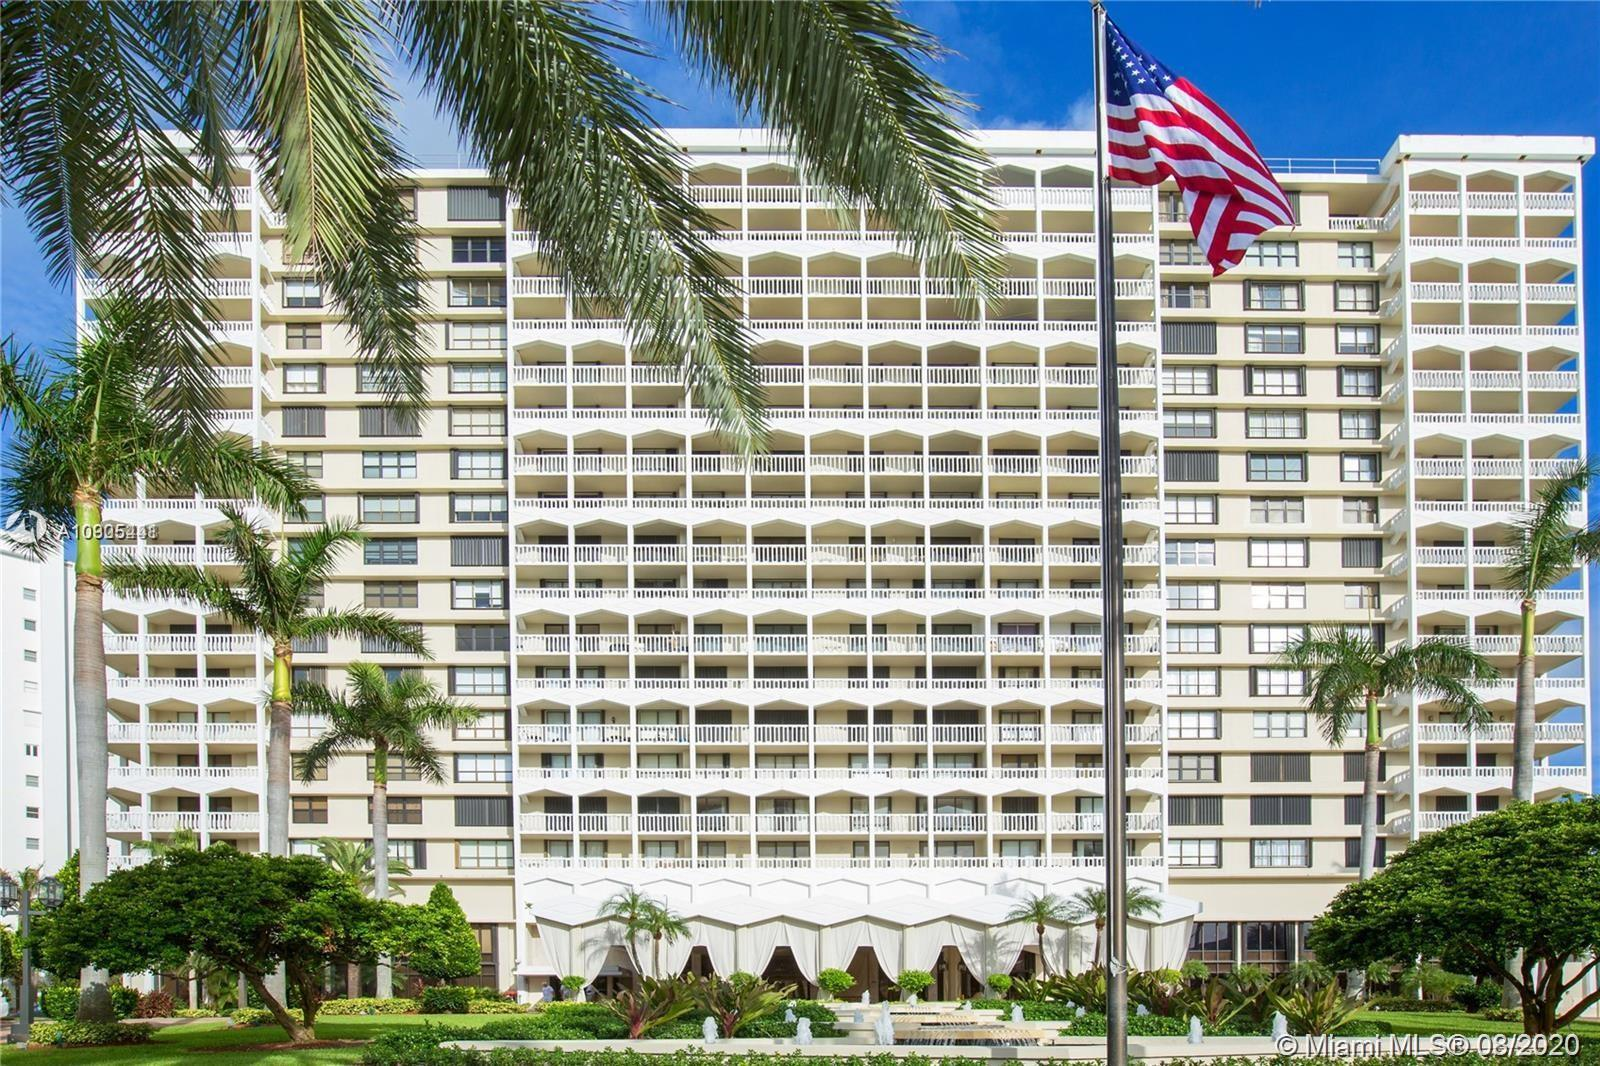 Prestigious condo Balmoral in exclusive Bal Harbour across world renowned Bal Harbour Shops and Hard